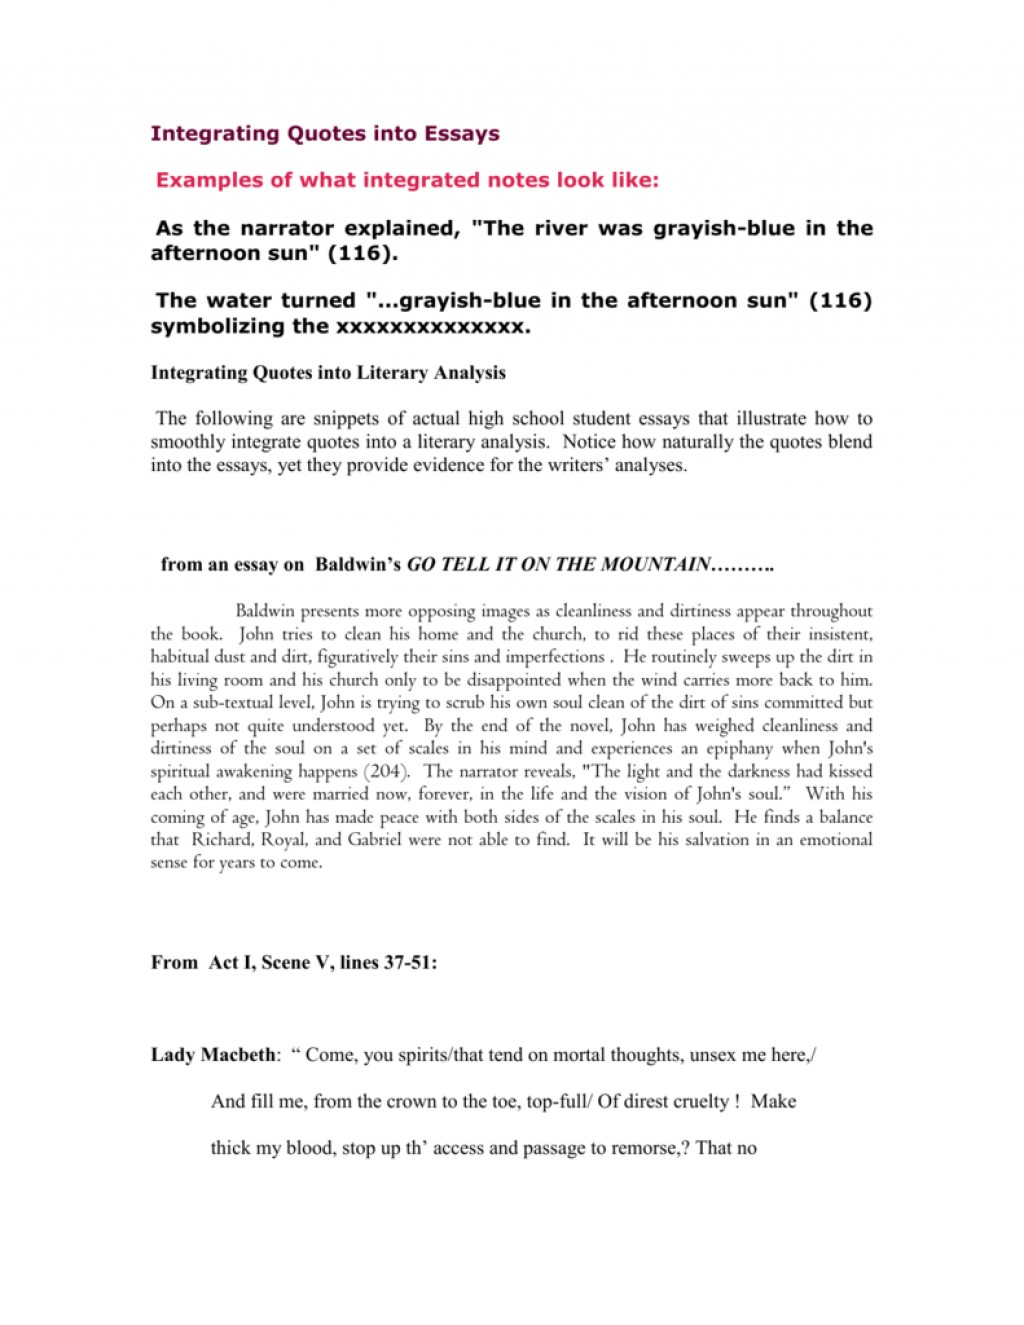 004 007322496 1 Essay Example How To Incorporate Quotes Into Wondrous An Integrating Worksheet A Long Quote Mla Famous In Large